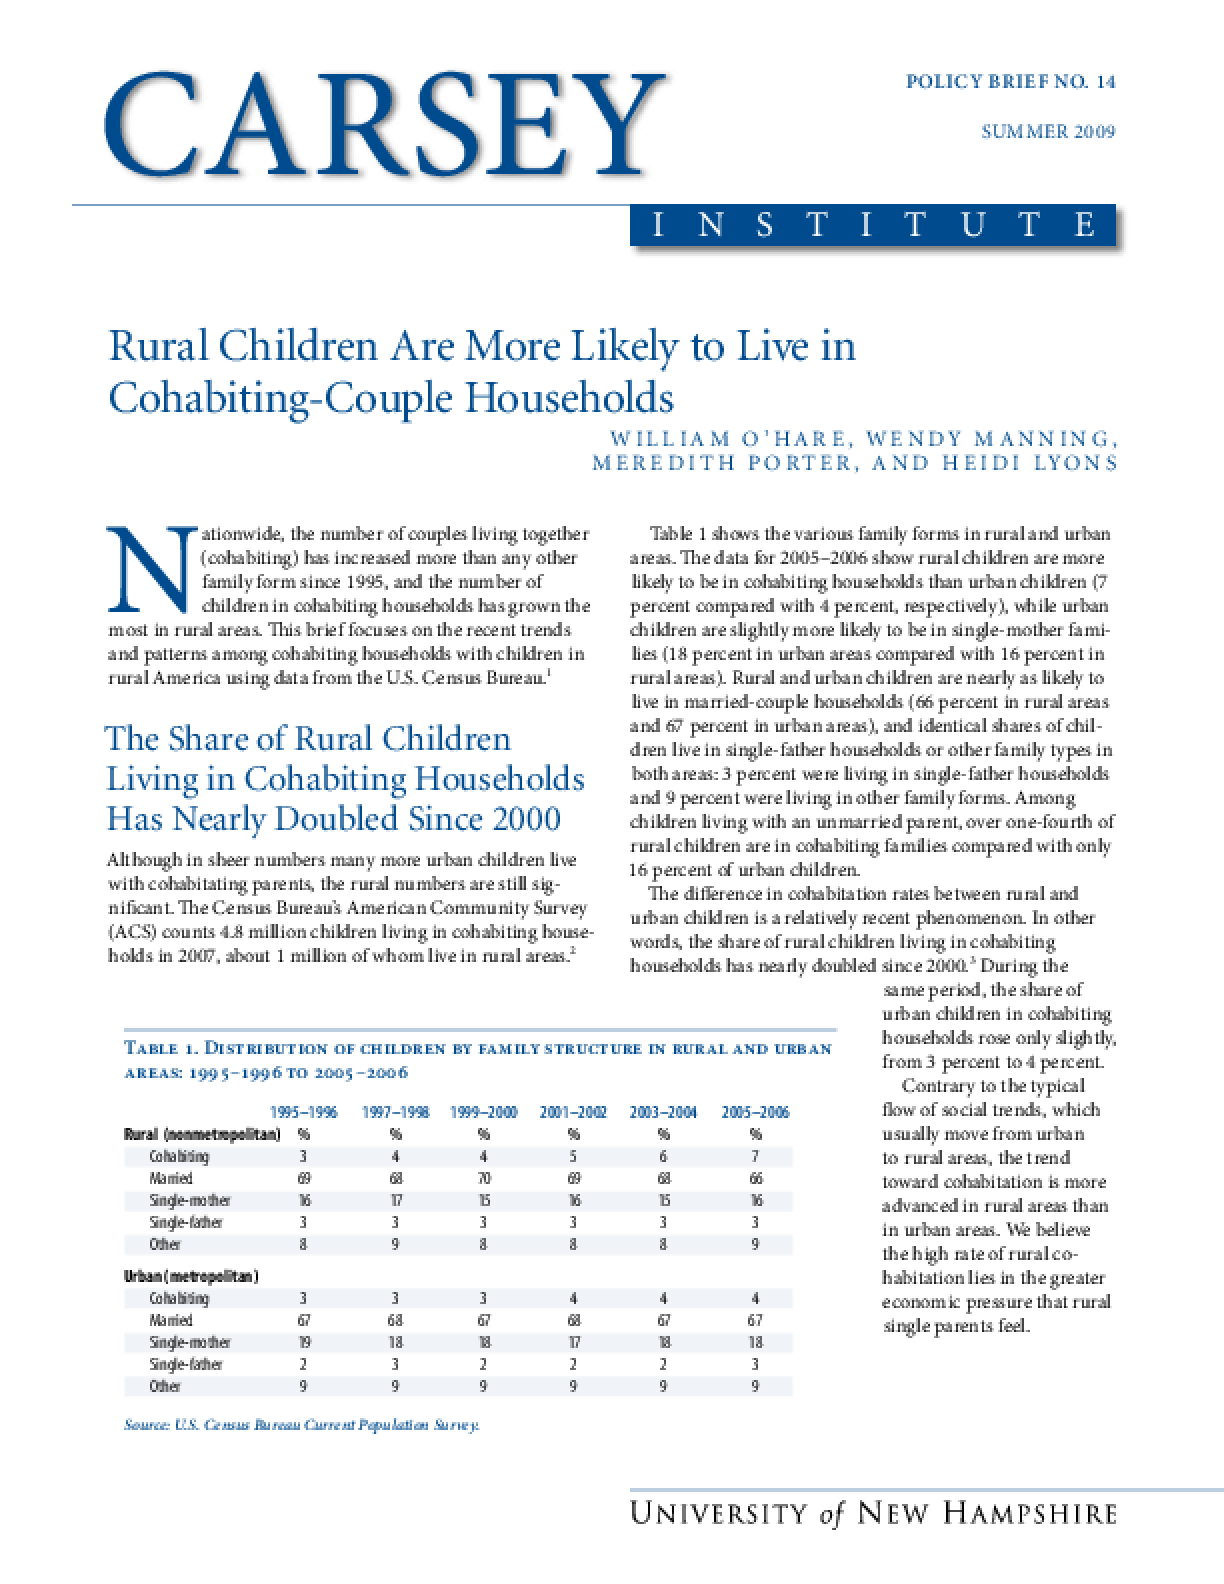 Rural Children Are More Likely to Live in Cohabiting-Couple Households